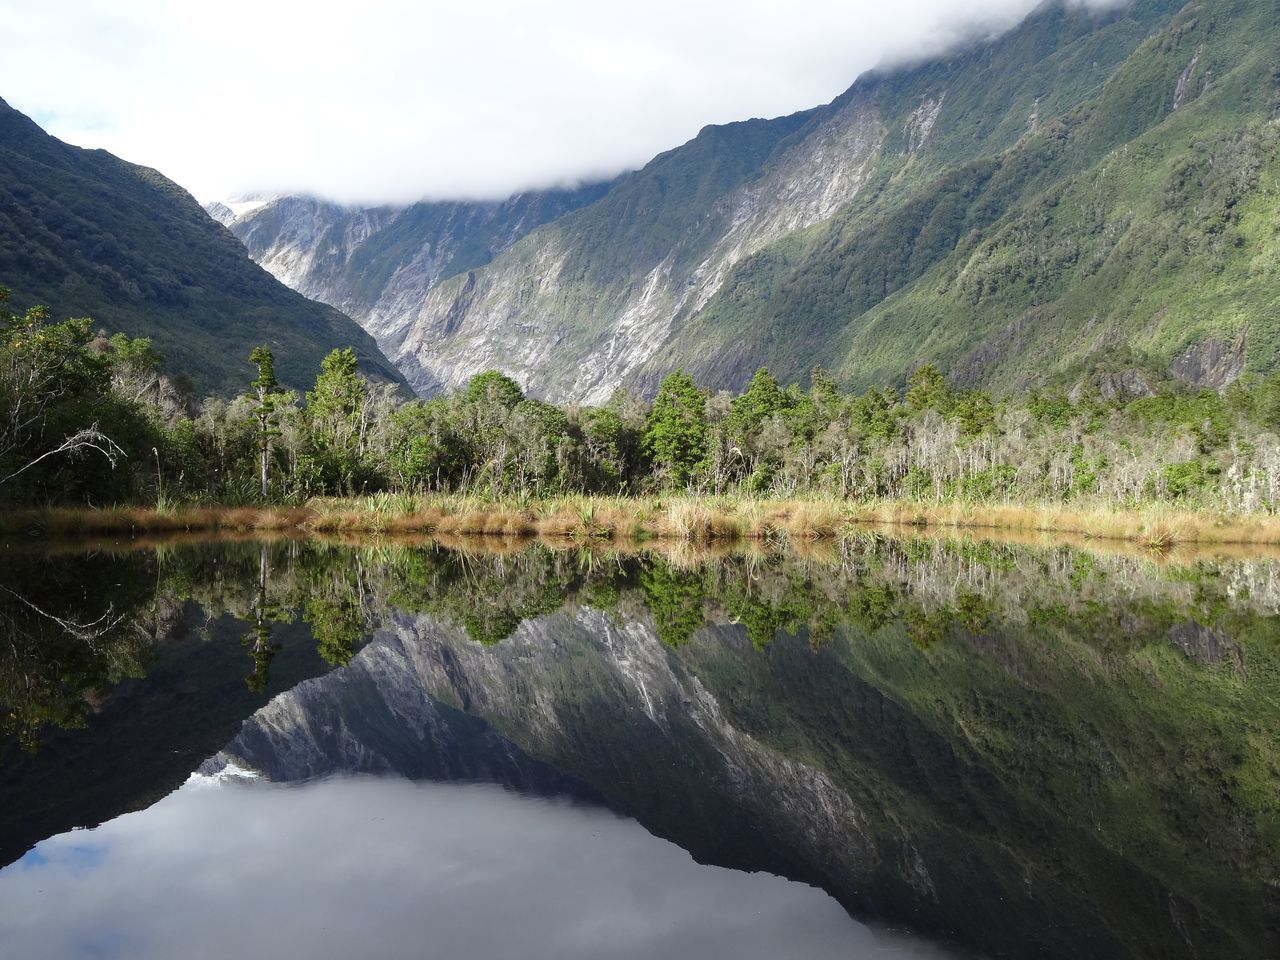 Reflection Water Mountain Nature Scenics No People Beauty In Nature Idyllic Mountain Range Sky Tranquil Scene Tranquility Outdoors Day Tree Water Reflections Franz Josef Glacier Mirror Lake New Zealand Symmetry Lake